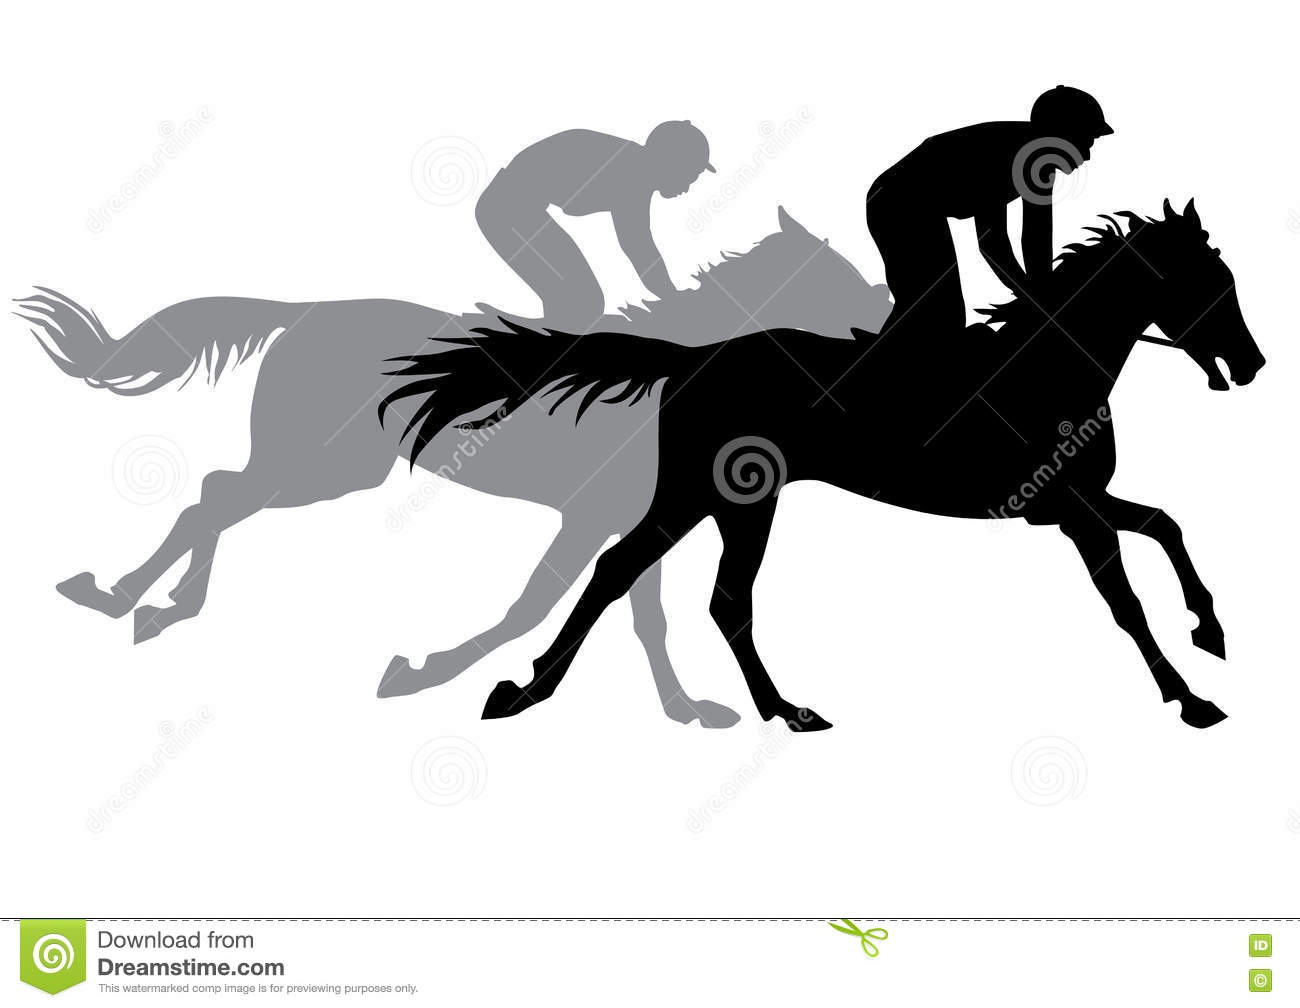 Two Jockeys Riding Horses Stock Vector Illustration Of Black